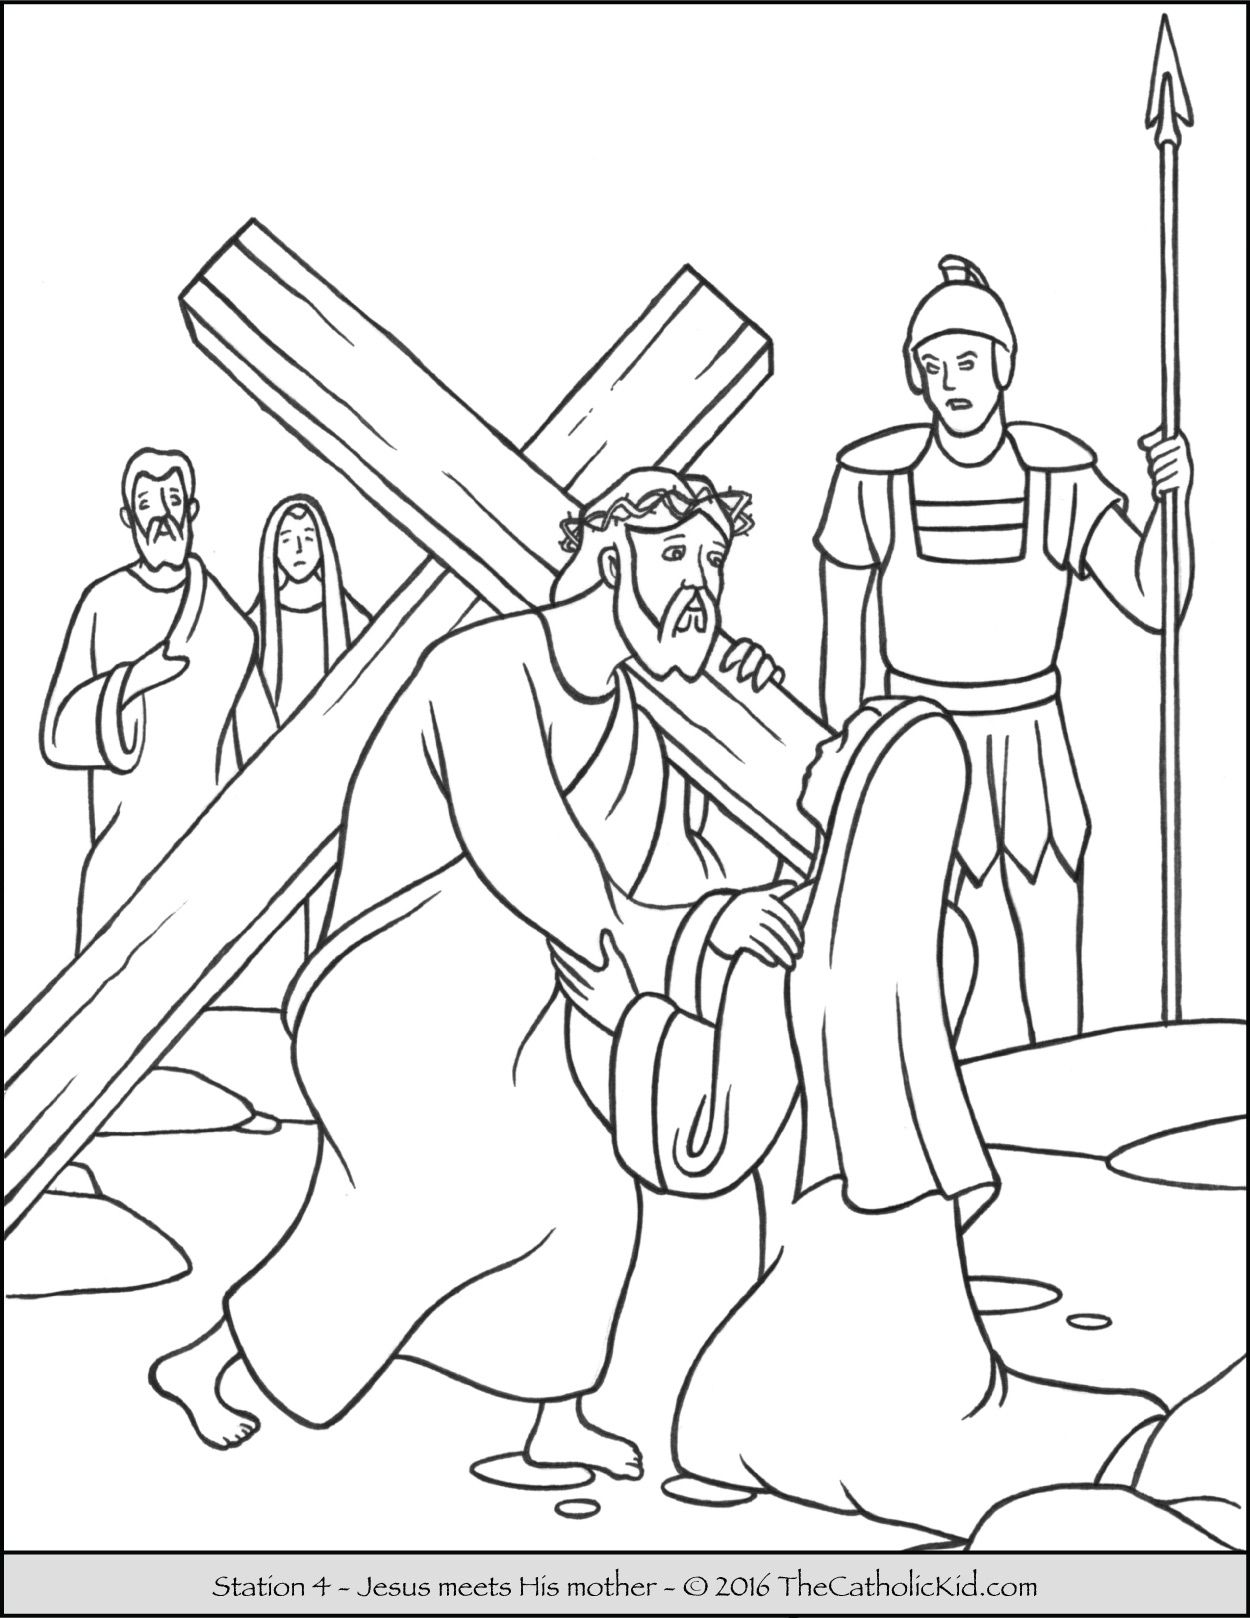 Stations of the Cross Coloring Pages 4 - Jesus meets His mother ...